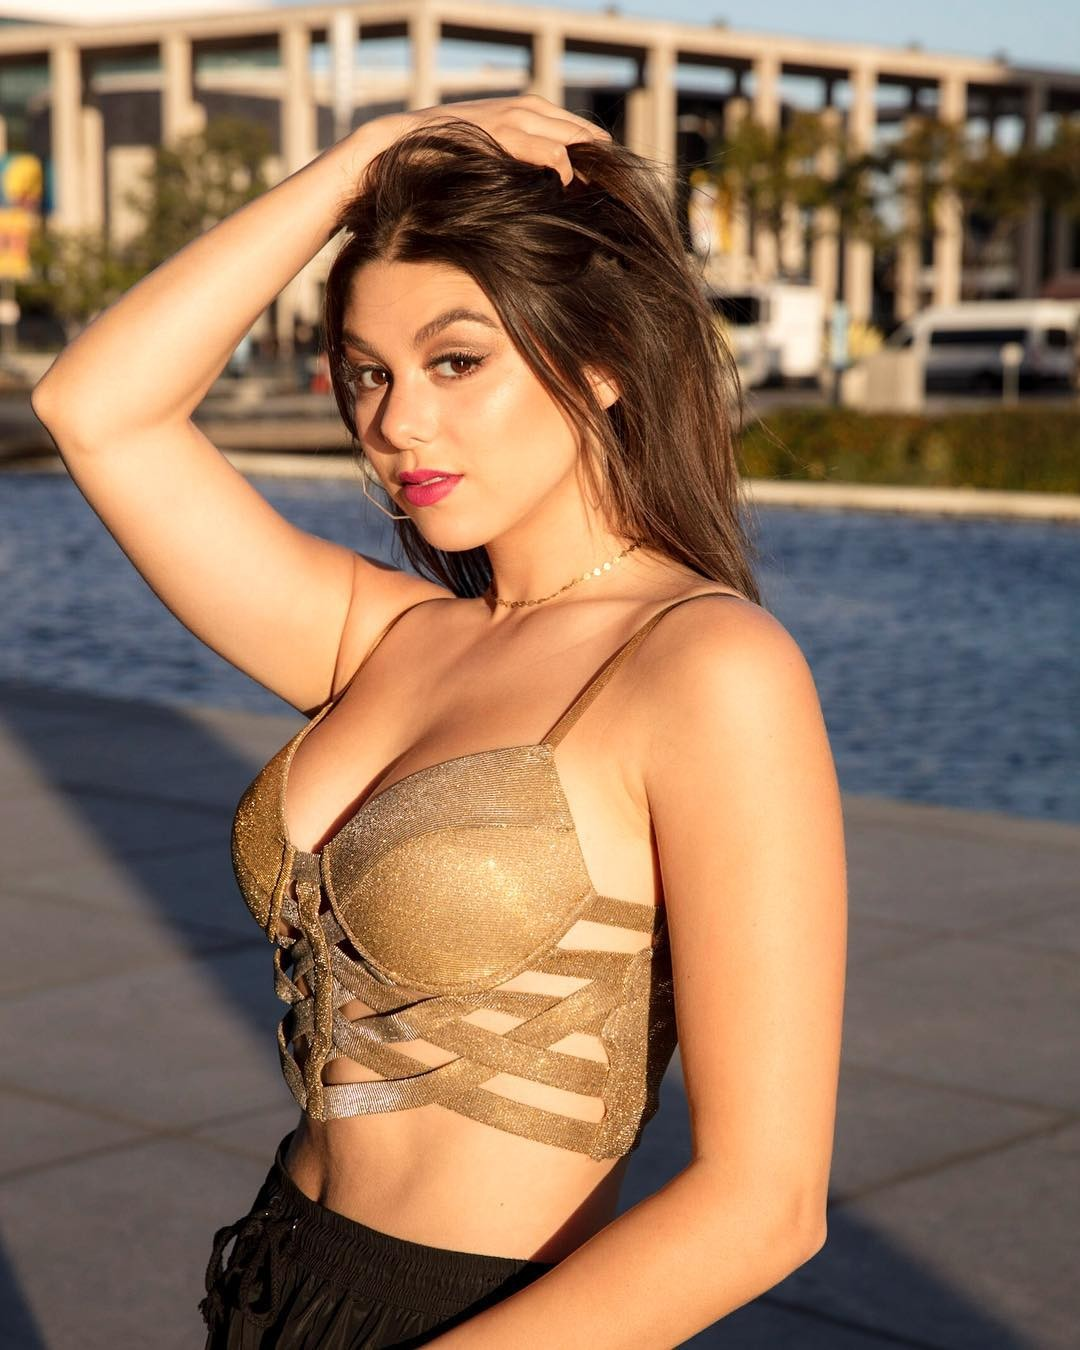 Kira Kosarin Collection of Hot Pics, Great Body | The